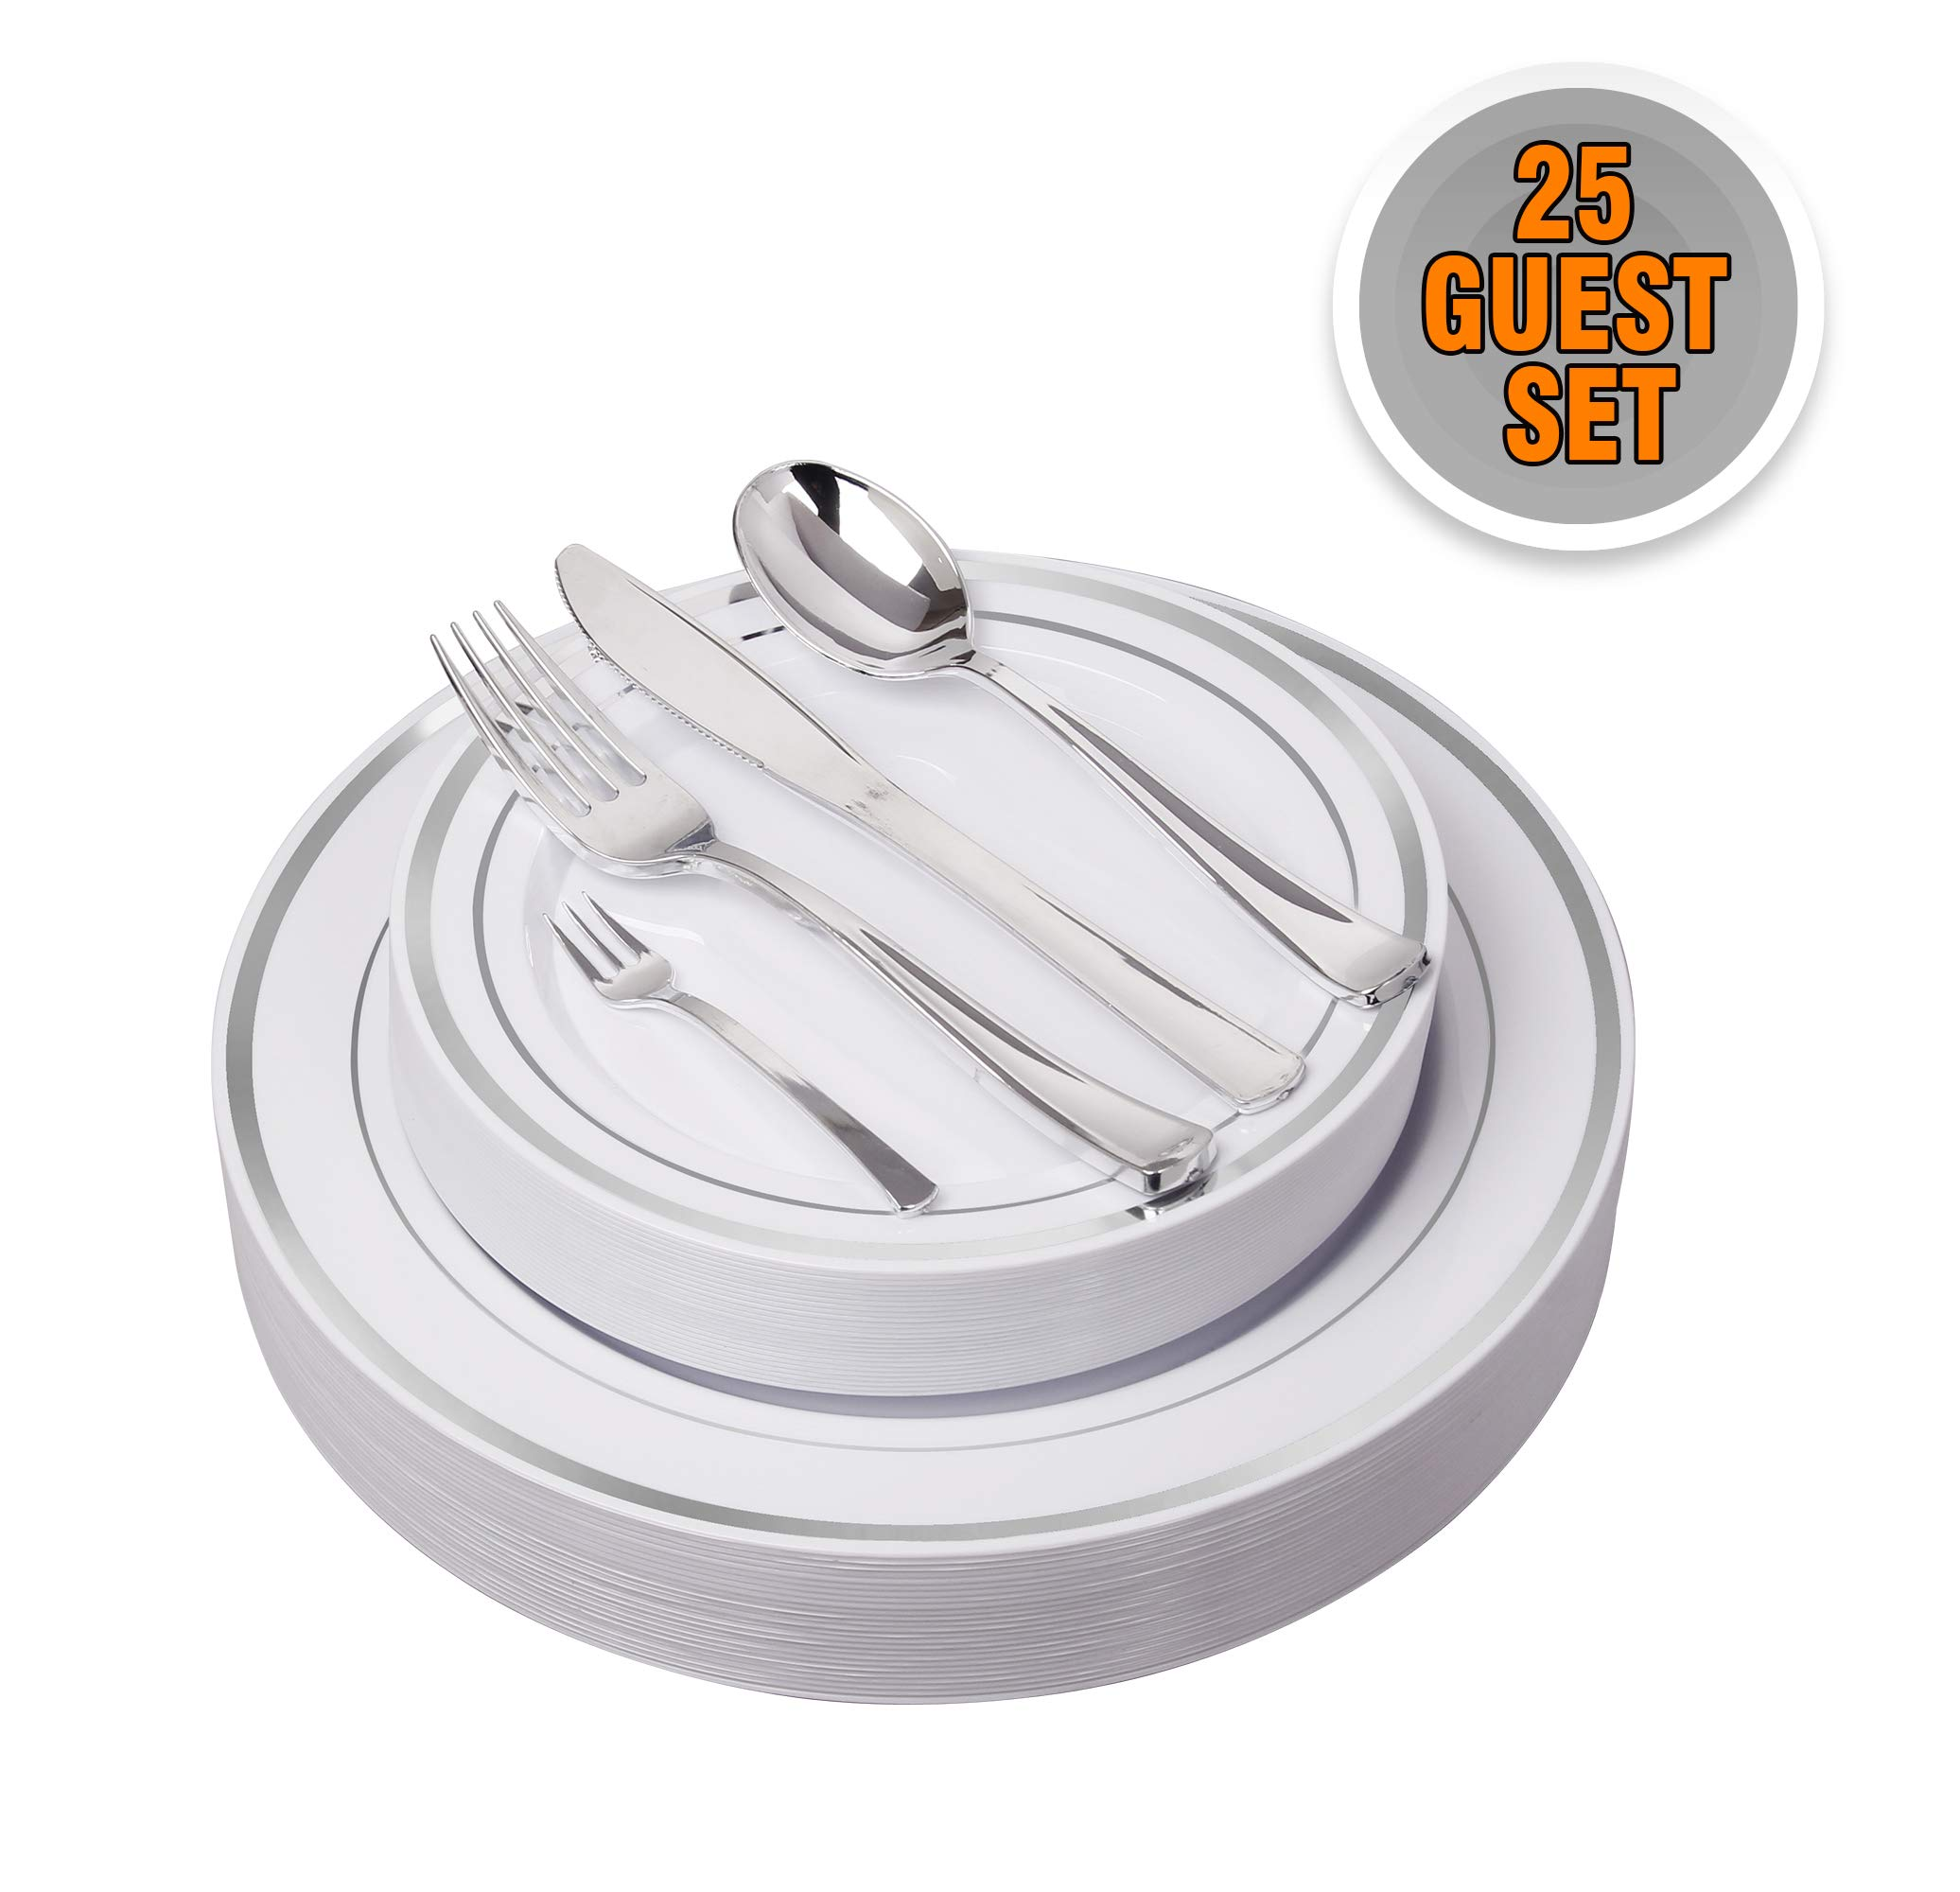 125 Pieces Premium Quality Heavyweight Tableware/Elegant Plastic Disposable dinnerware: 25 Dinner Plates, 25 Salad or Dessert Plates & 25 Polished Silver Forks Knives & Spoons - Bonus 25 Dessert Forks by AZURIWARE